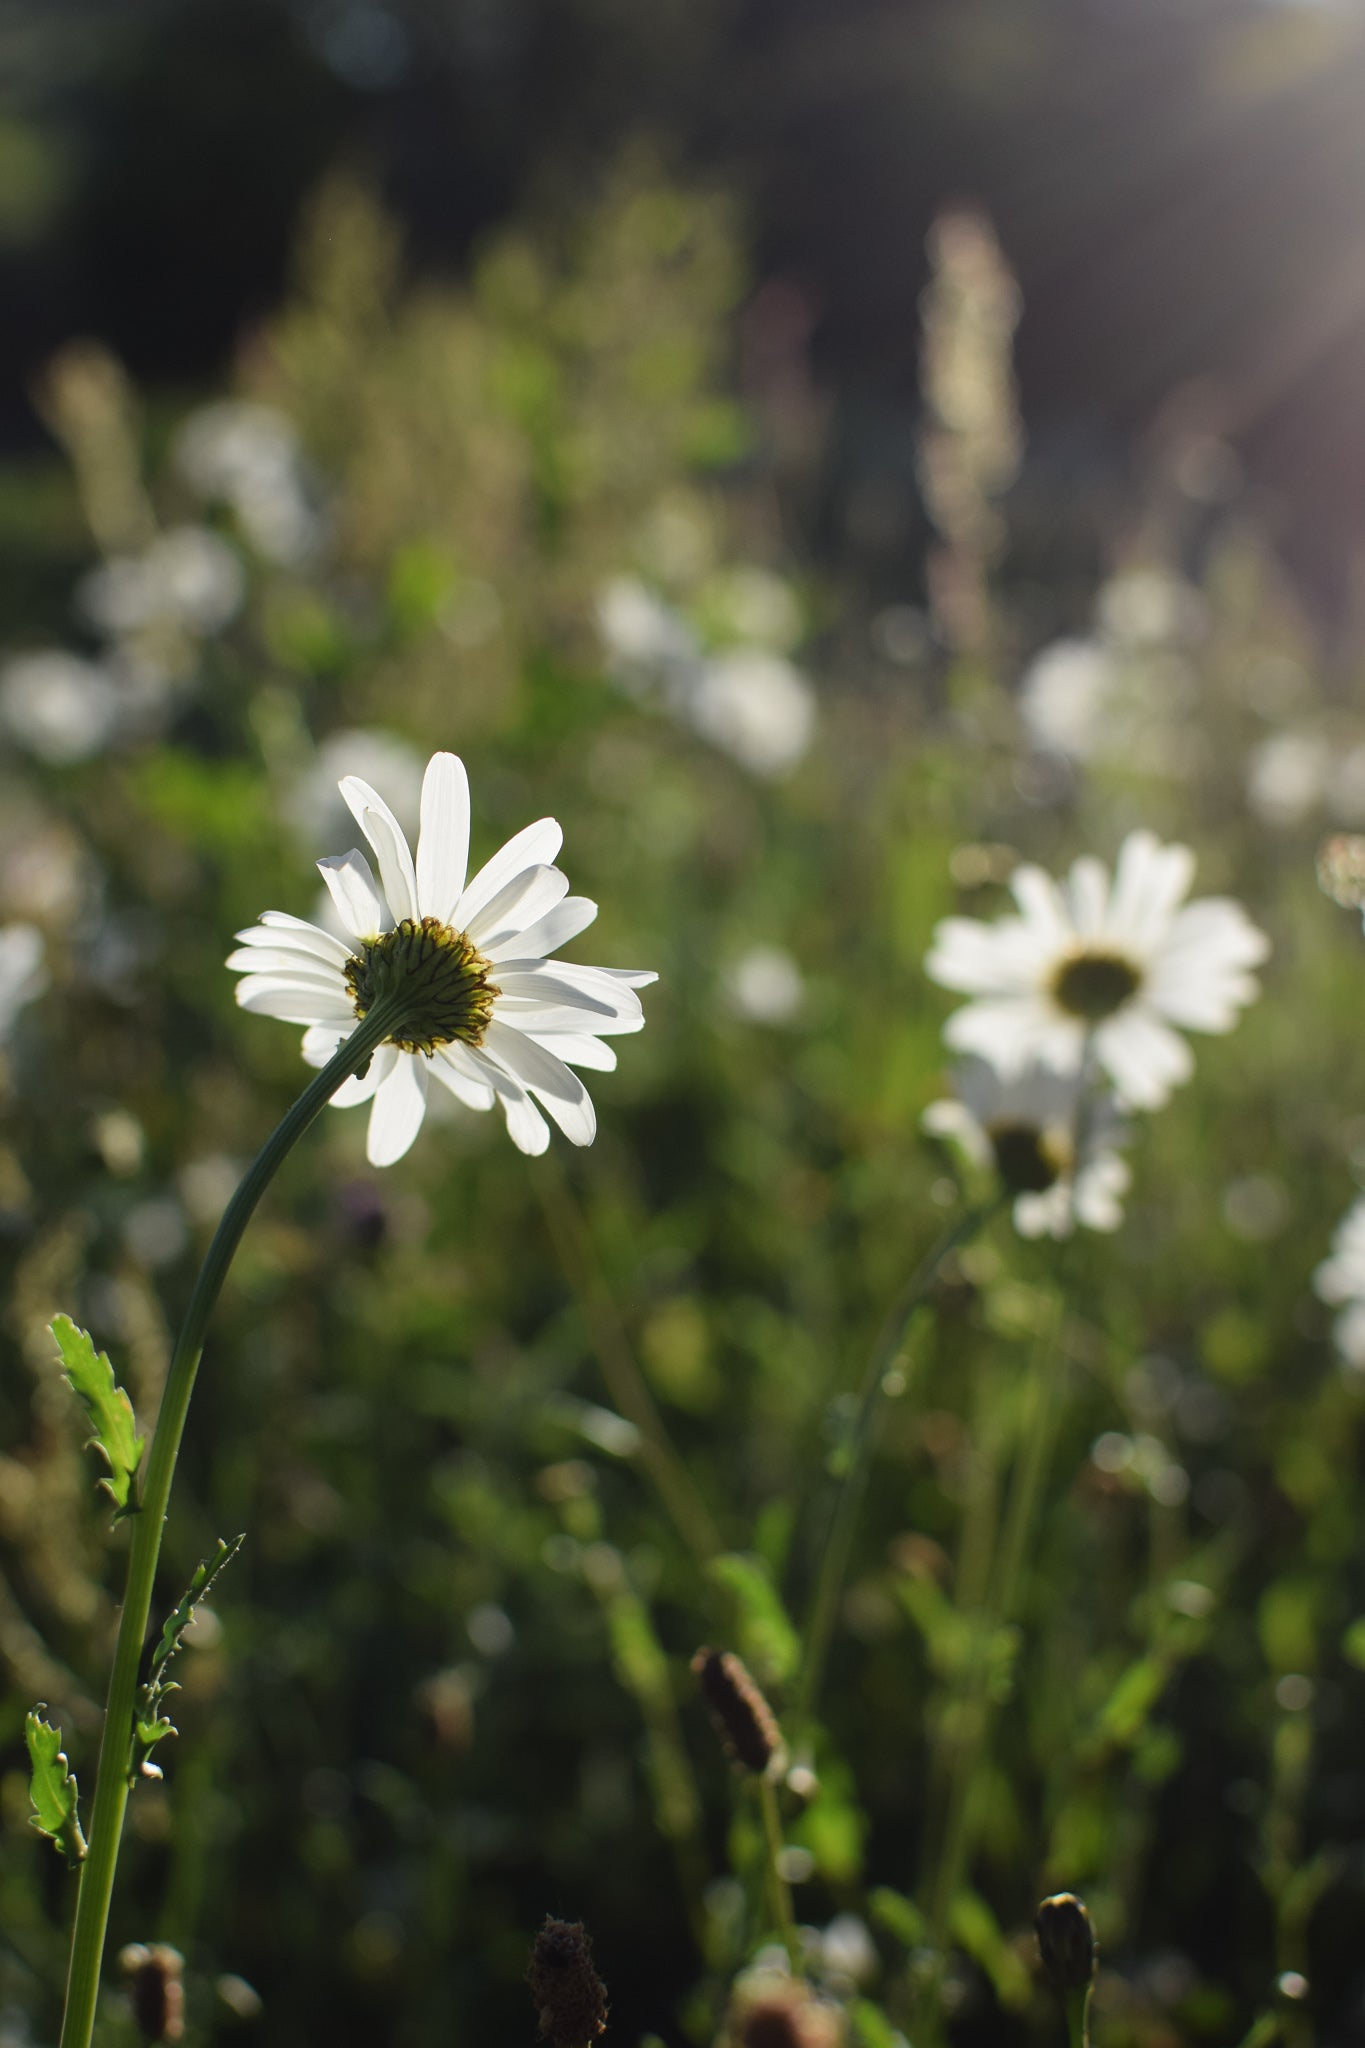 daisies in the park